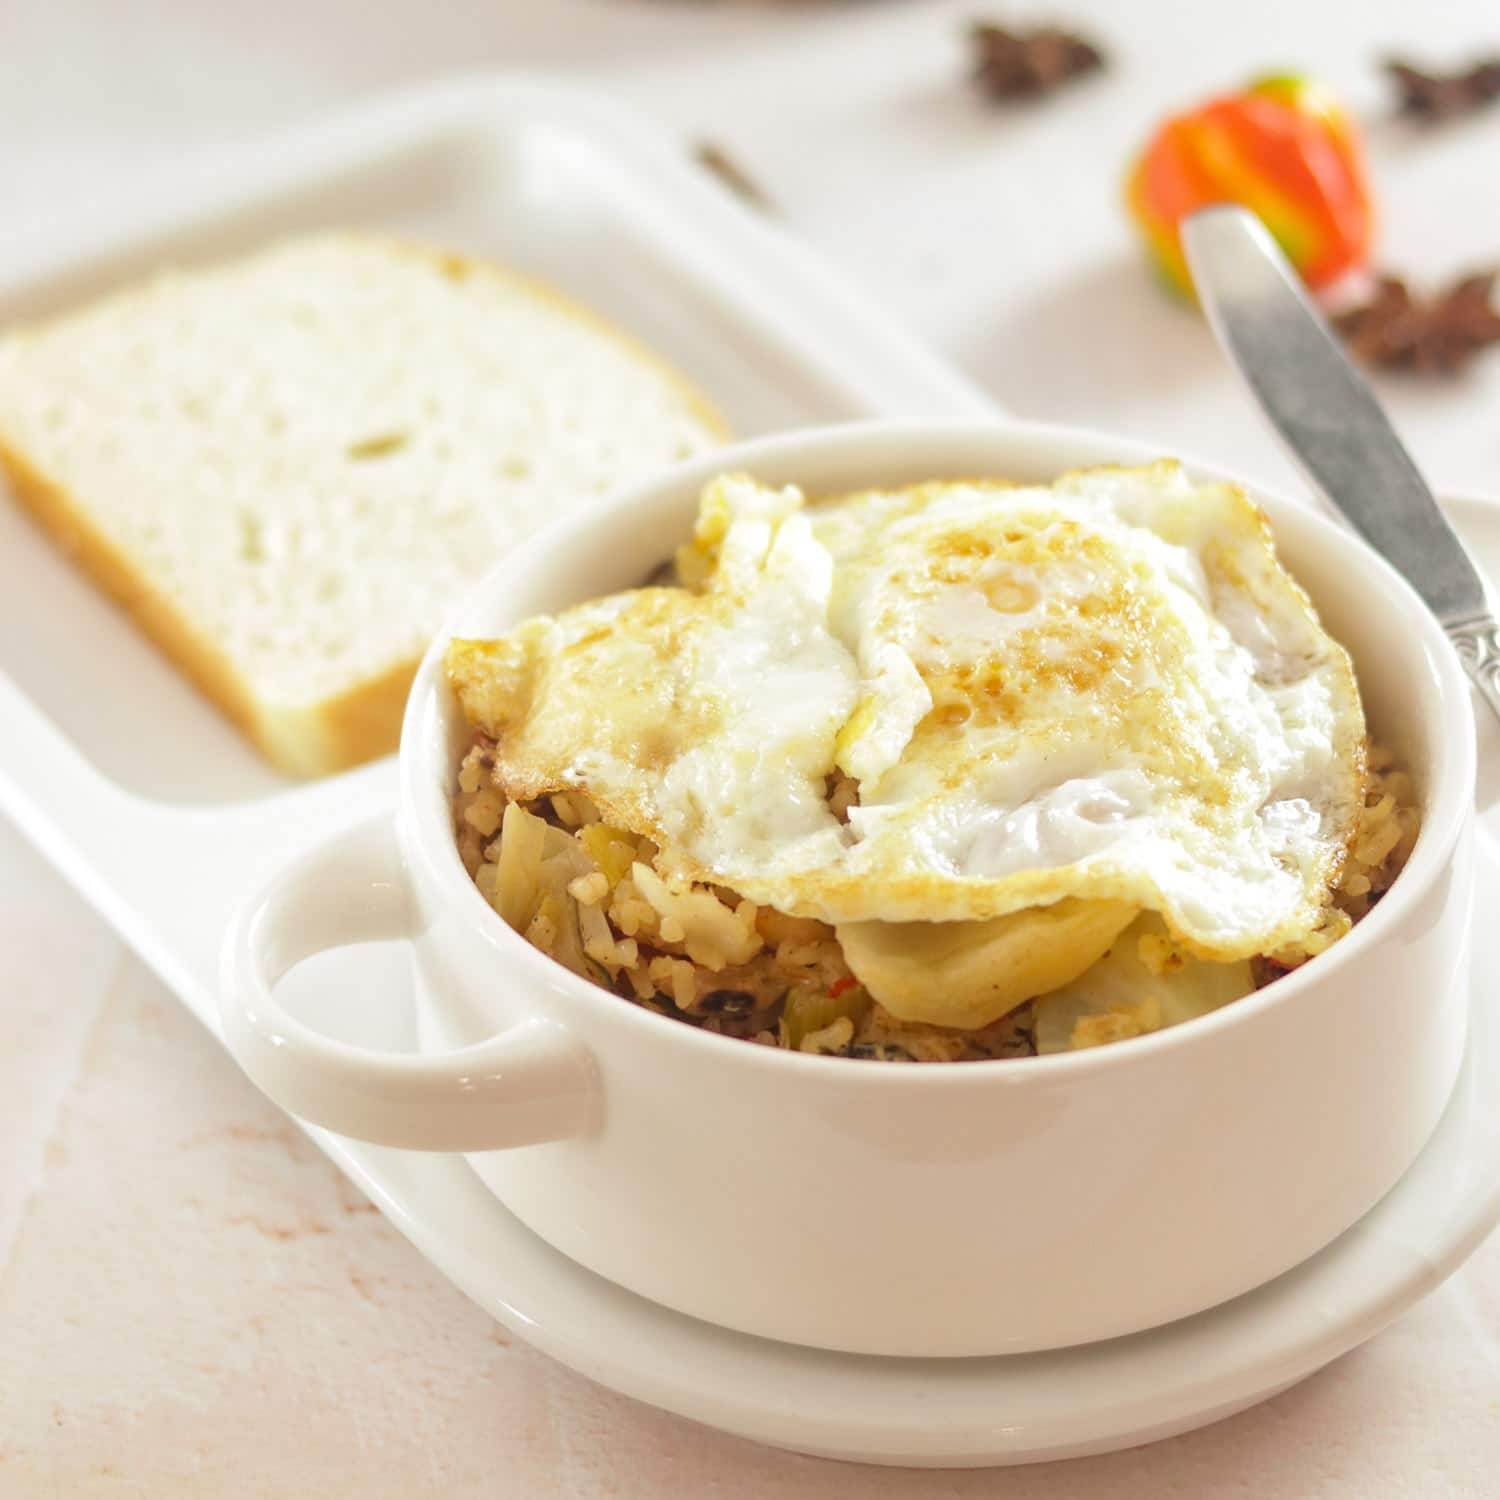 rice and chicken topped with a fried egg with a slice of bread in a bowl